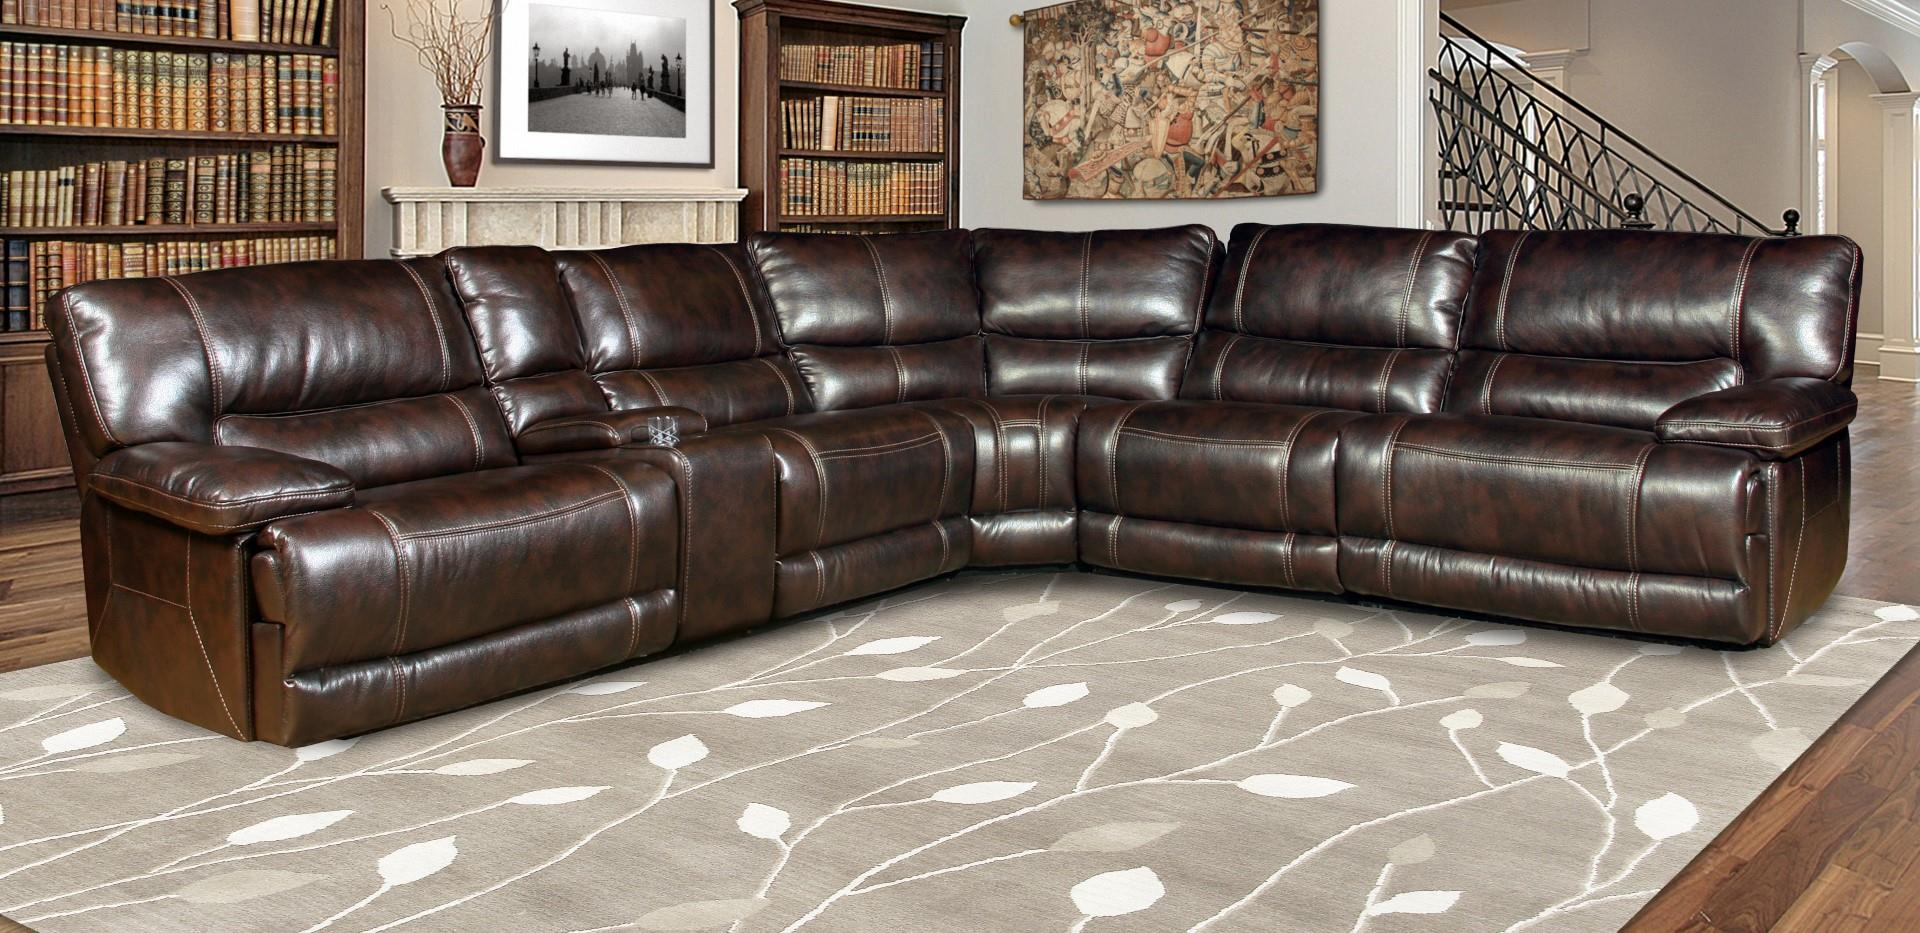 sectional, reclining